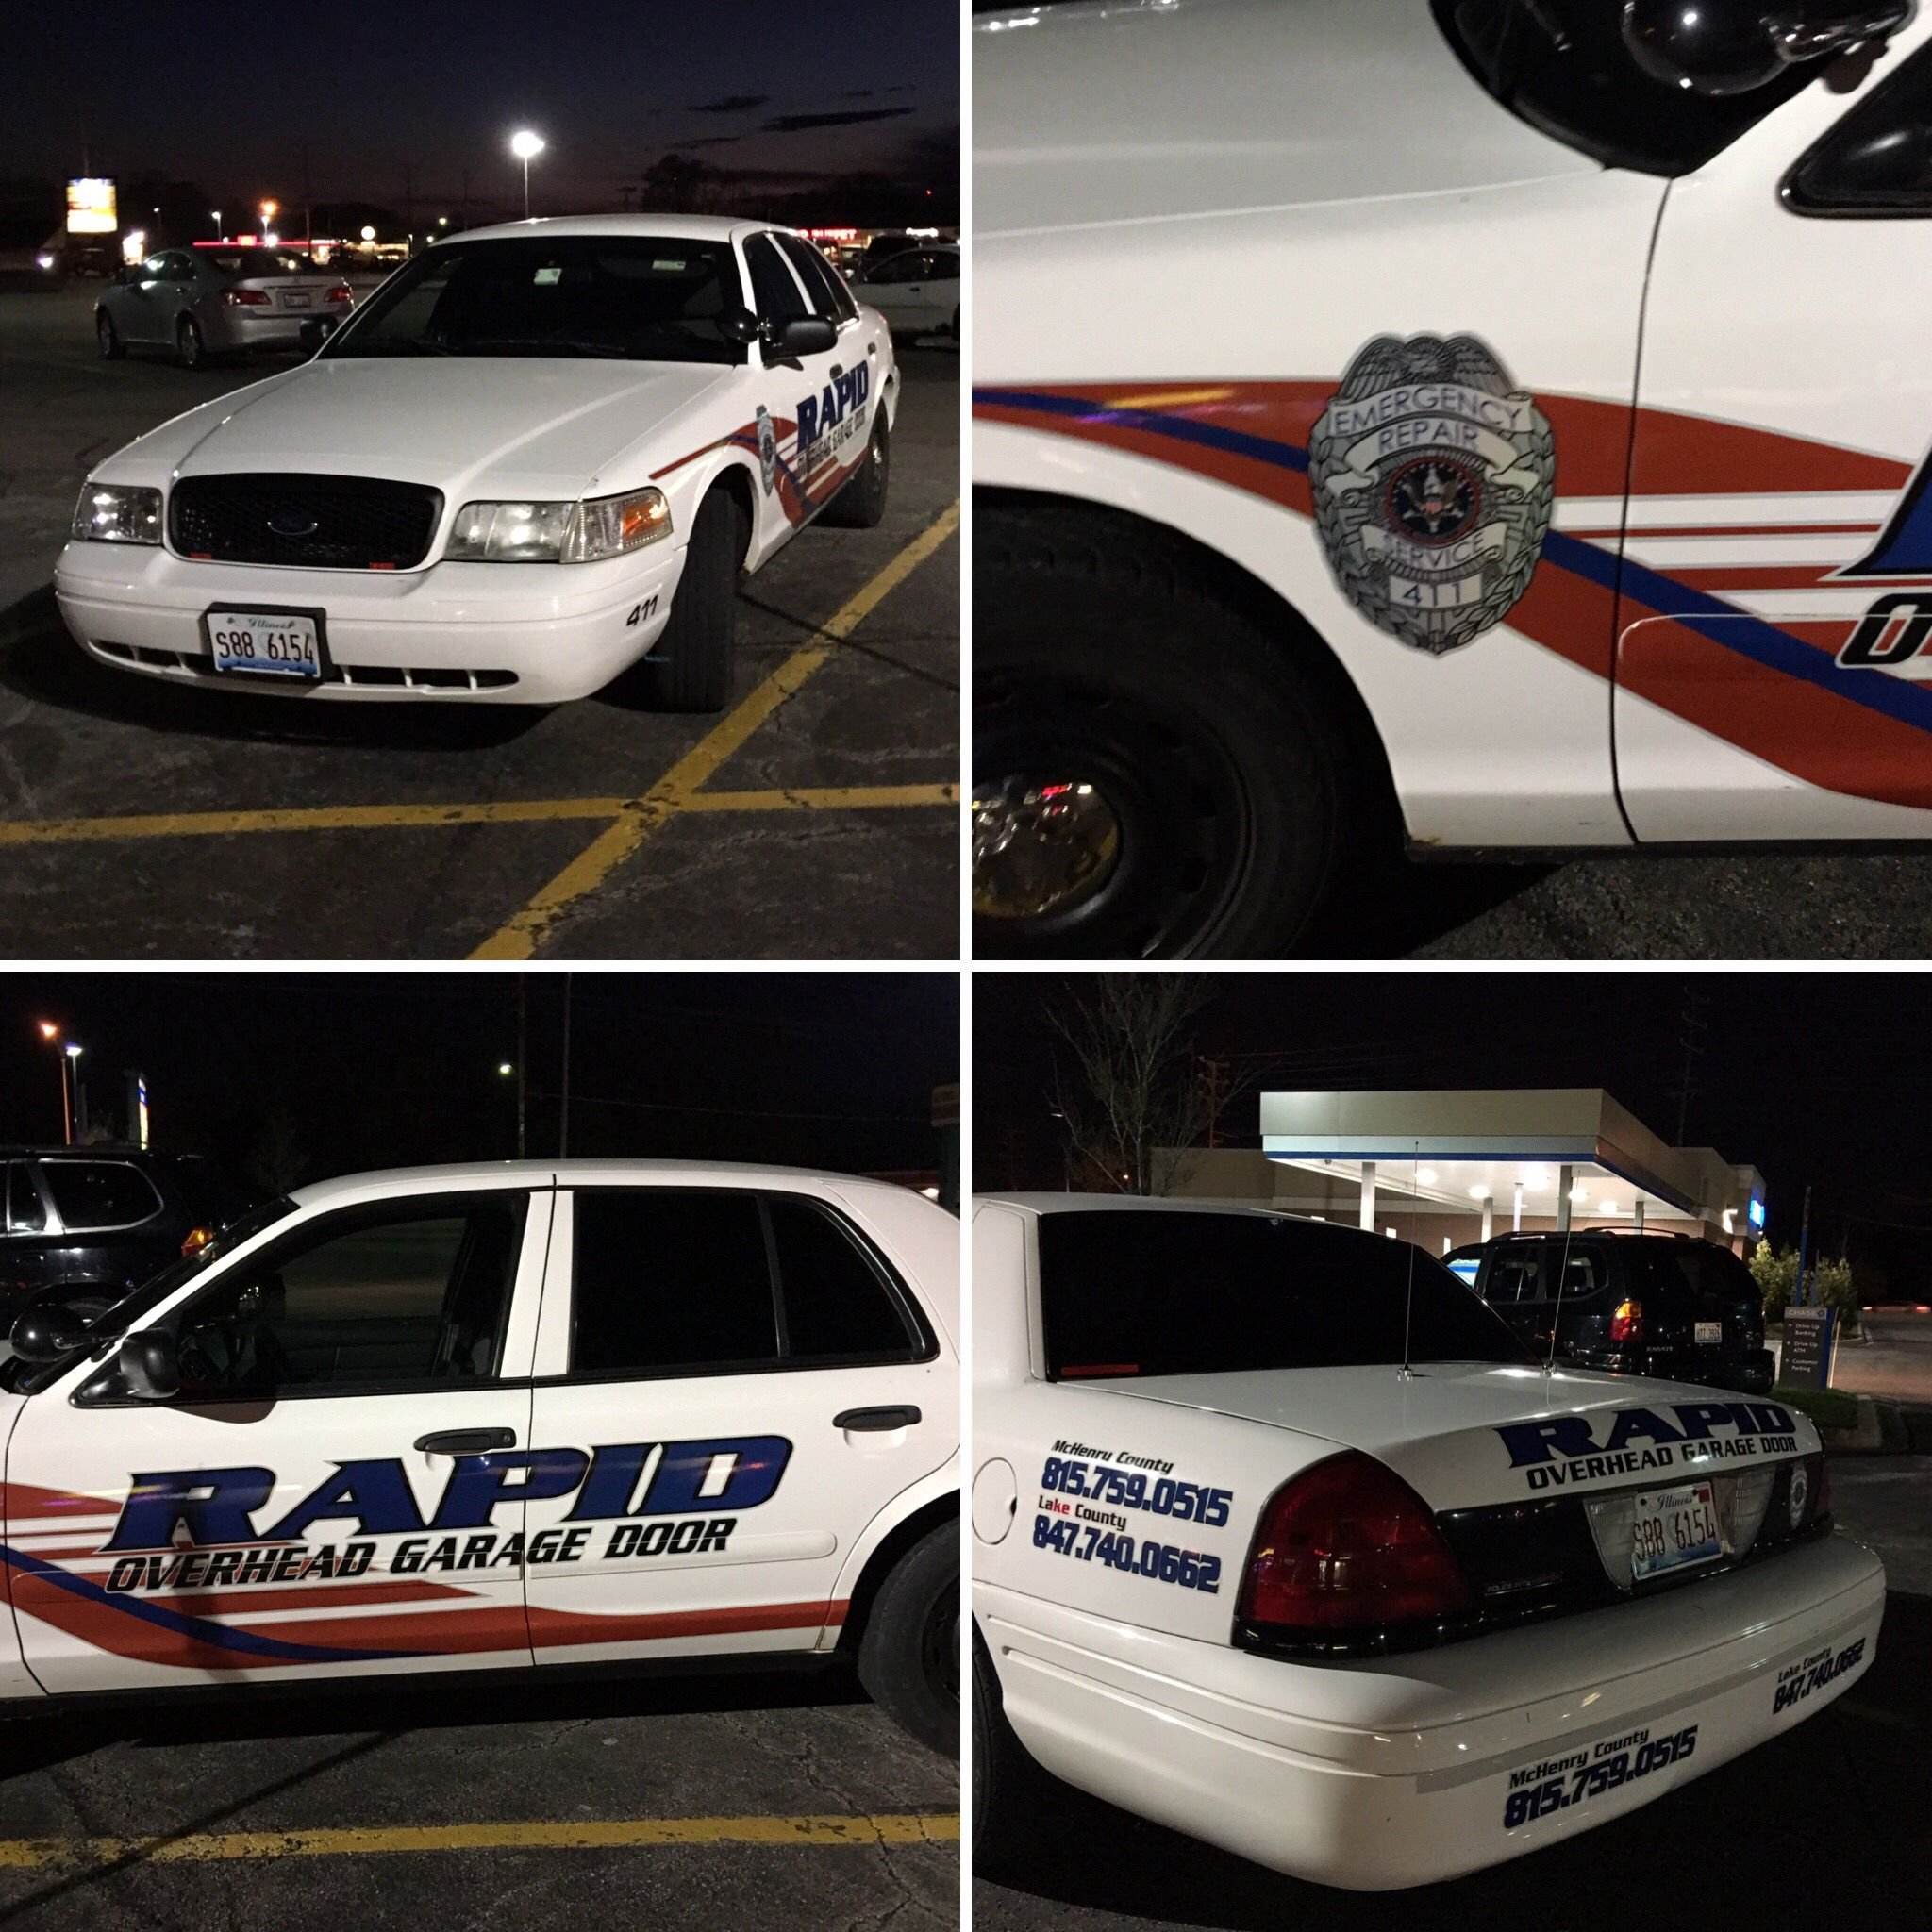 Ford Crown Victoria Rapid Overhead Garage Door It S A Private Service Company Vehicle Made To Look Like Police Car What Do You Think Of This By Library